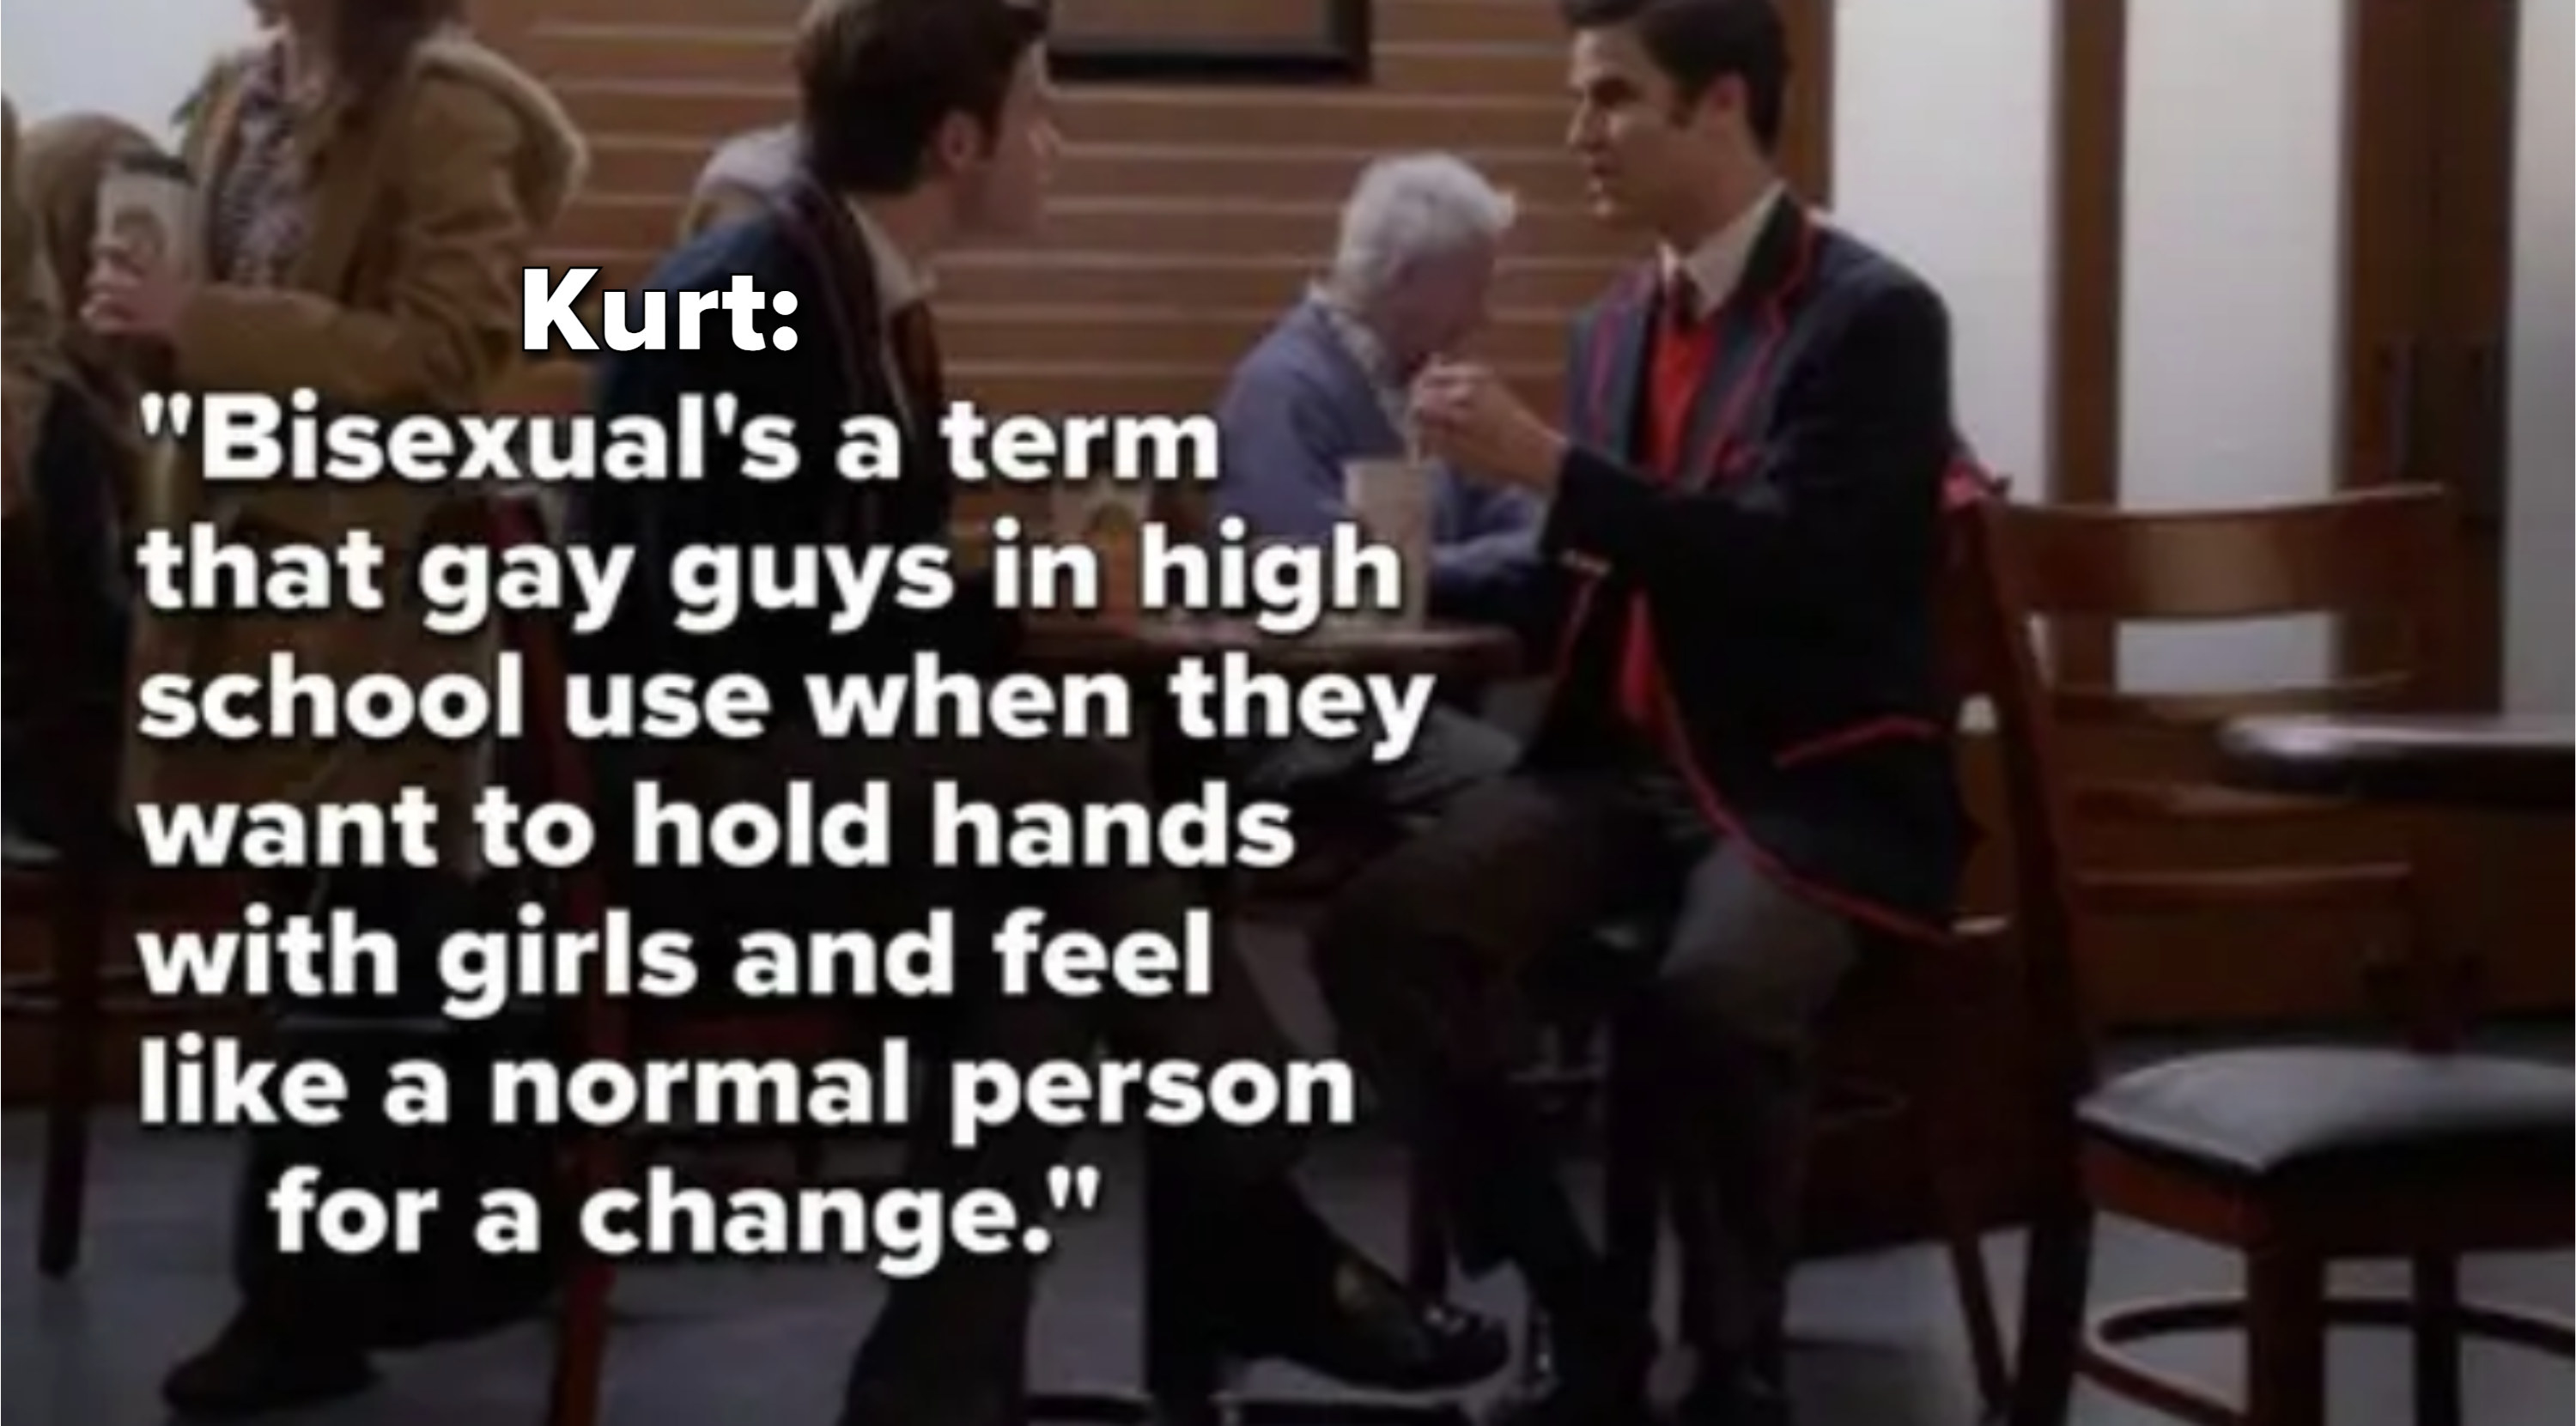 """Kurt saying """"Bisexual's a term that gay guys in high school use when they want to hold hands with girls and feel like a normal person for a change"""""""